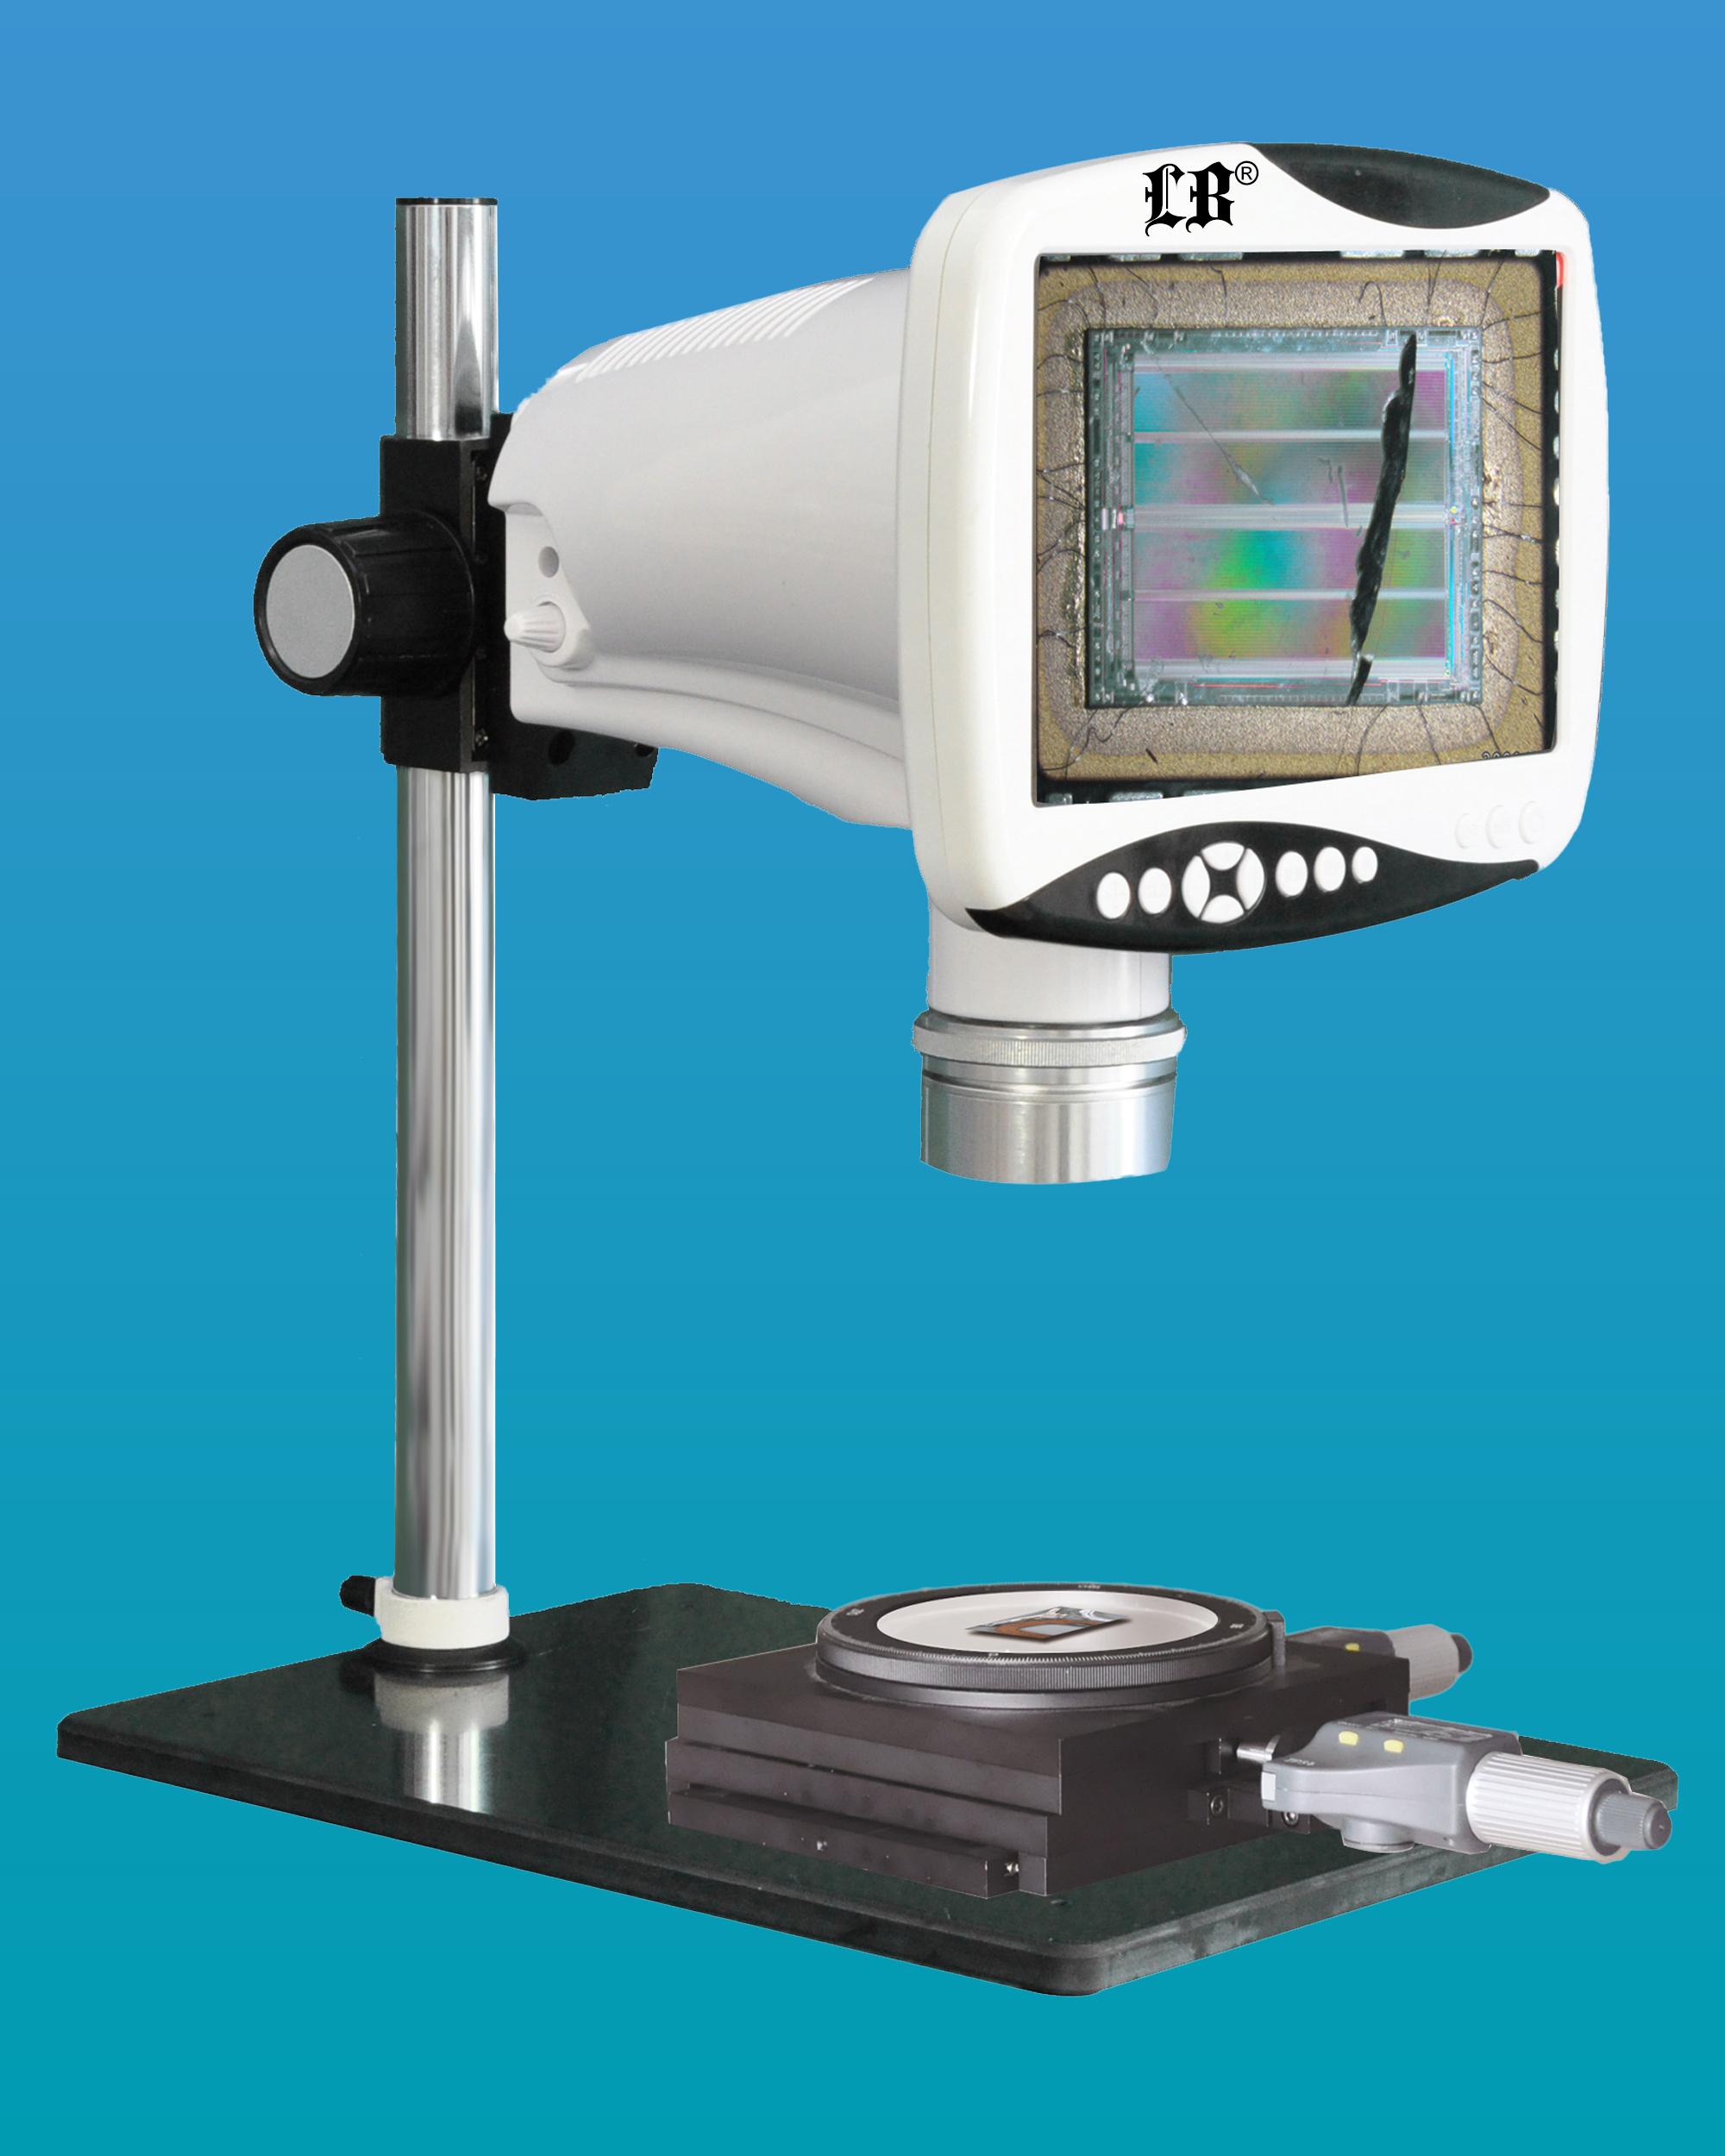 "[LB-343] Digital LCD Stereo Measuring Microscope w/ 9"" HD LCD Screen w/ HD Video & HDMI Output"